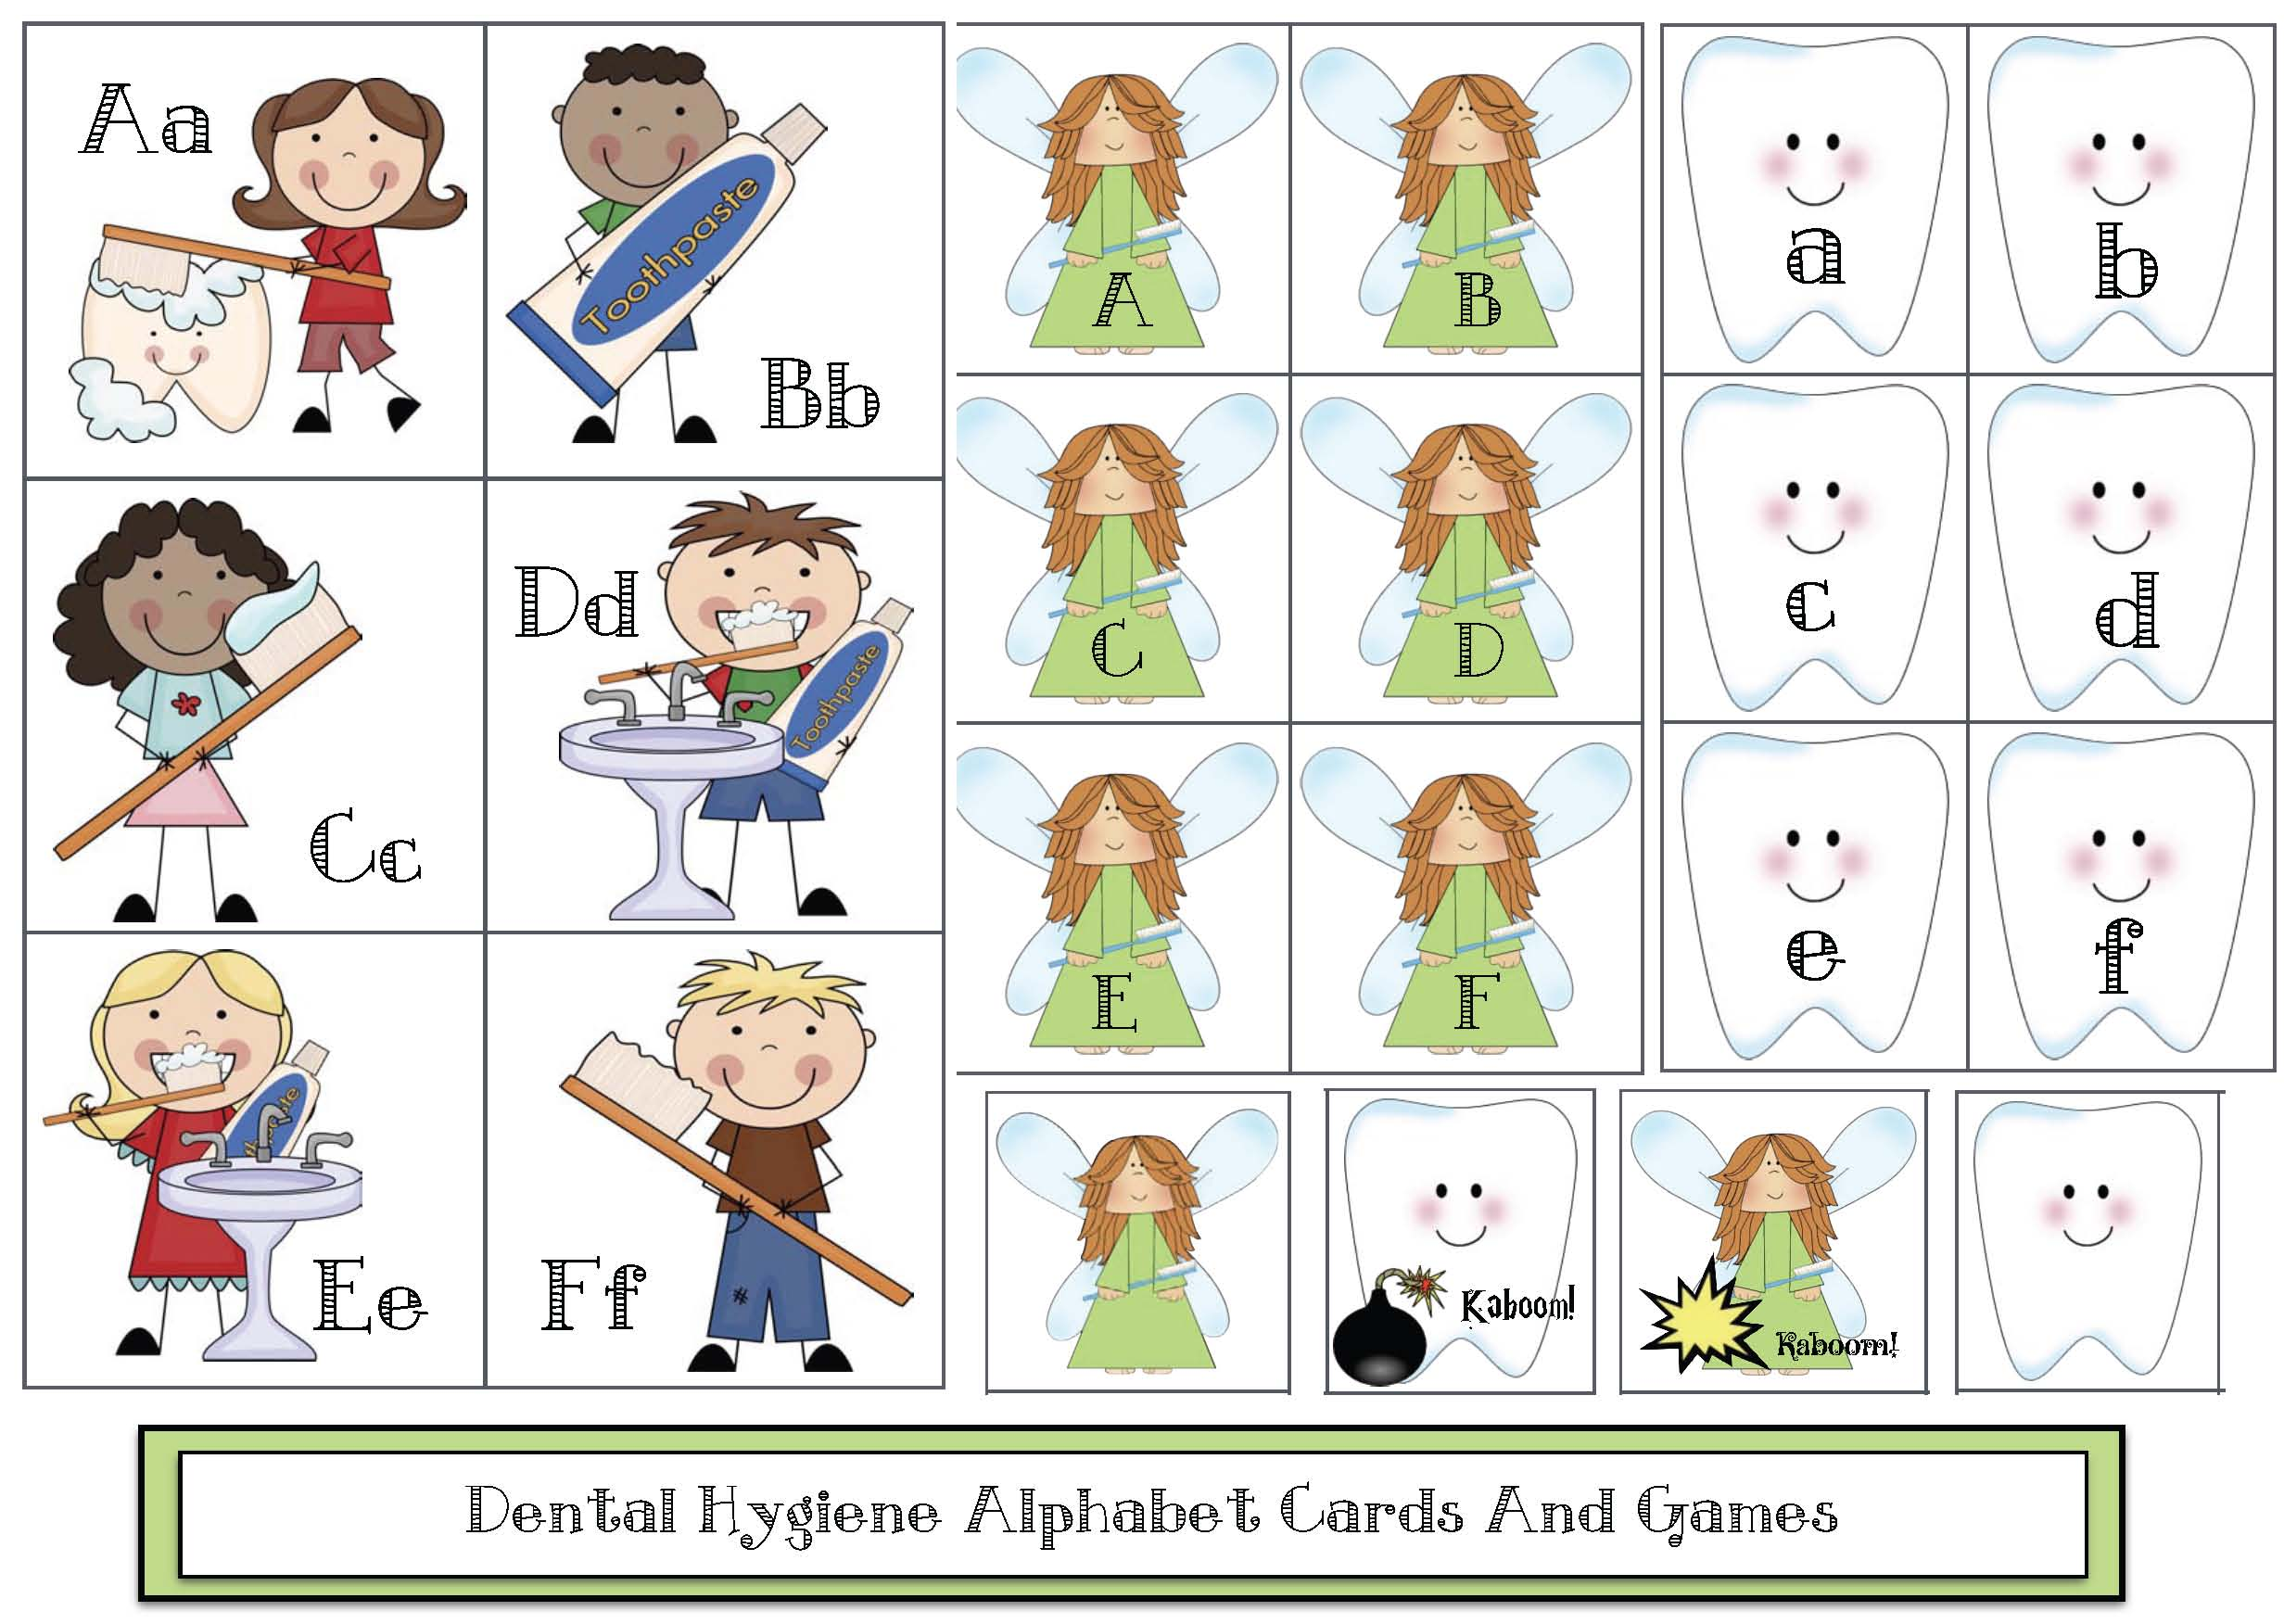 dental hygiene activites, dental hygiene alphabert cards, alphabet activities, alphabet games, alphabet centers, dental hygiene crafts, tooth crafts, tooth games, tooth centers, dental hygience centers, teeth activities, math activities for dental hygiene